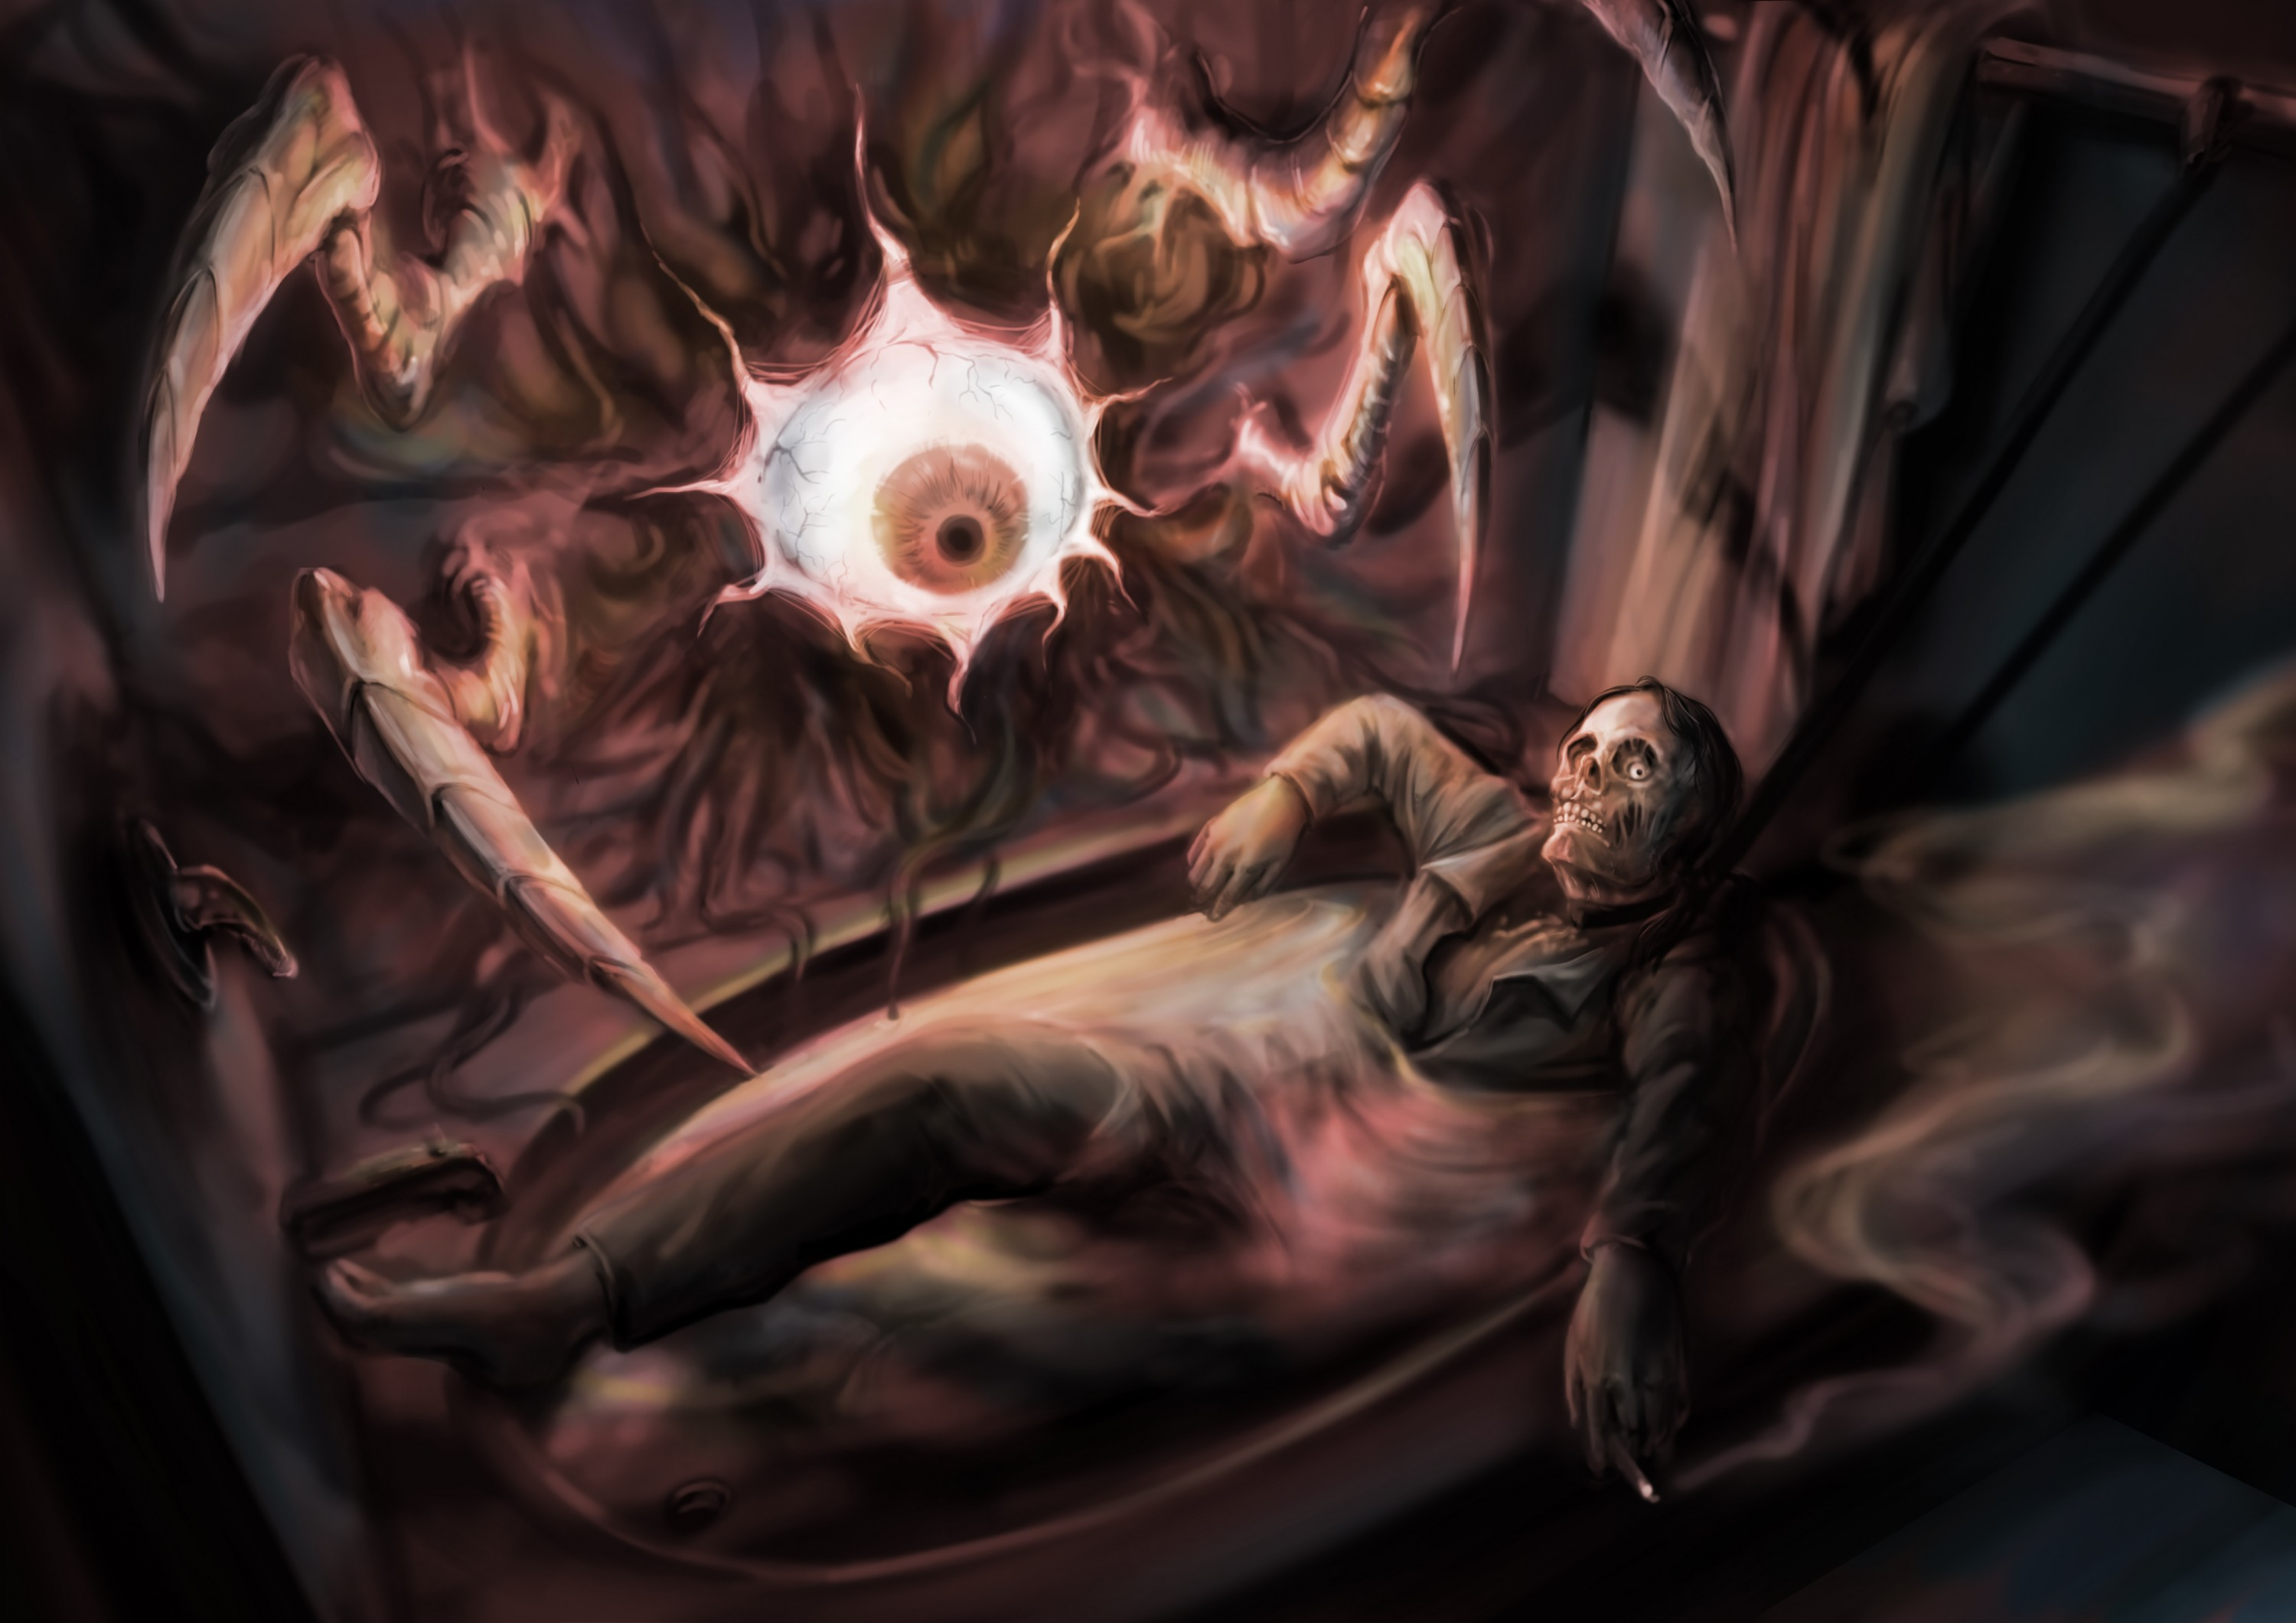 A man whose head is a skull lays in the bathtub. His left hand is holding a cigarette. There is a huge eyeball on the wall. There are also some claws reaching out from the wall.